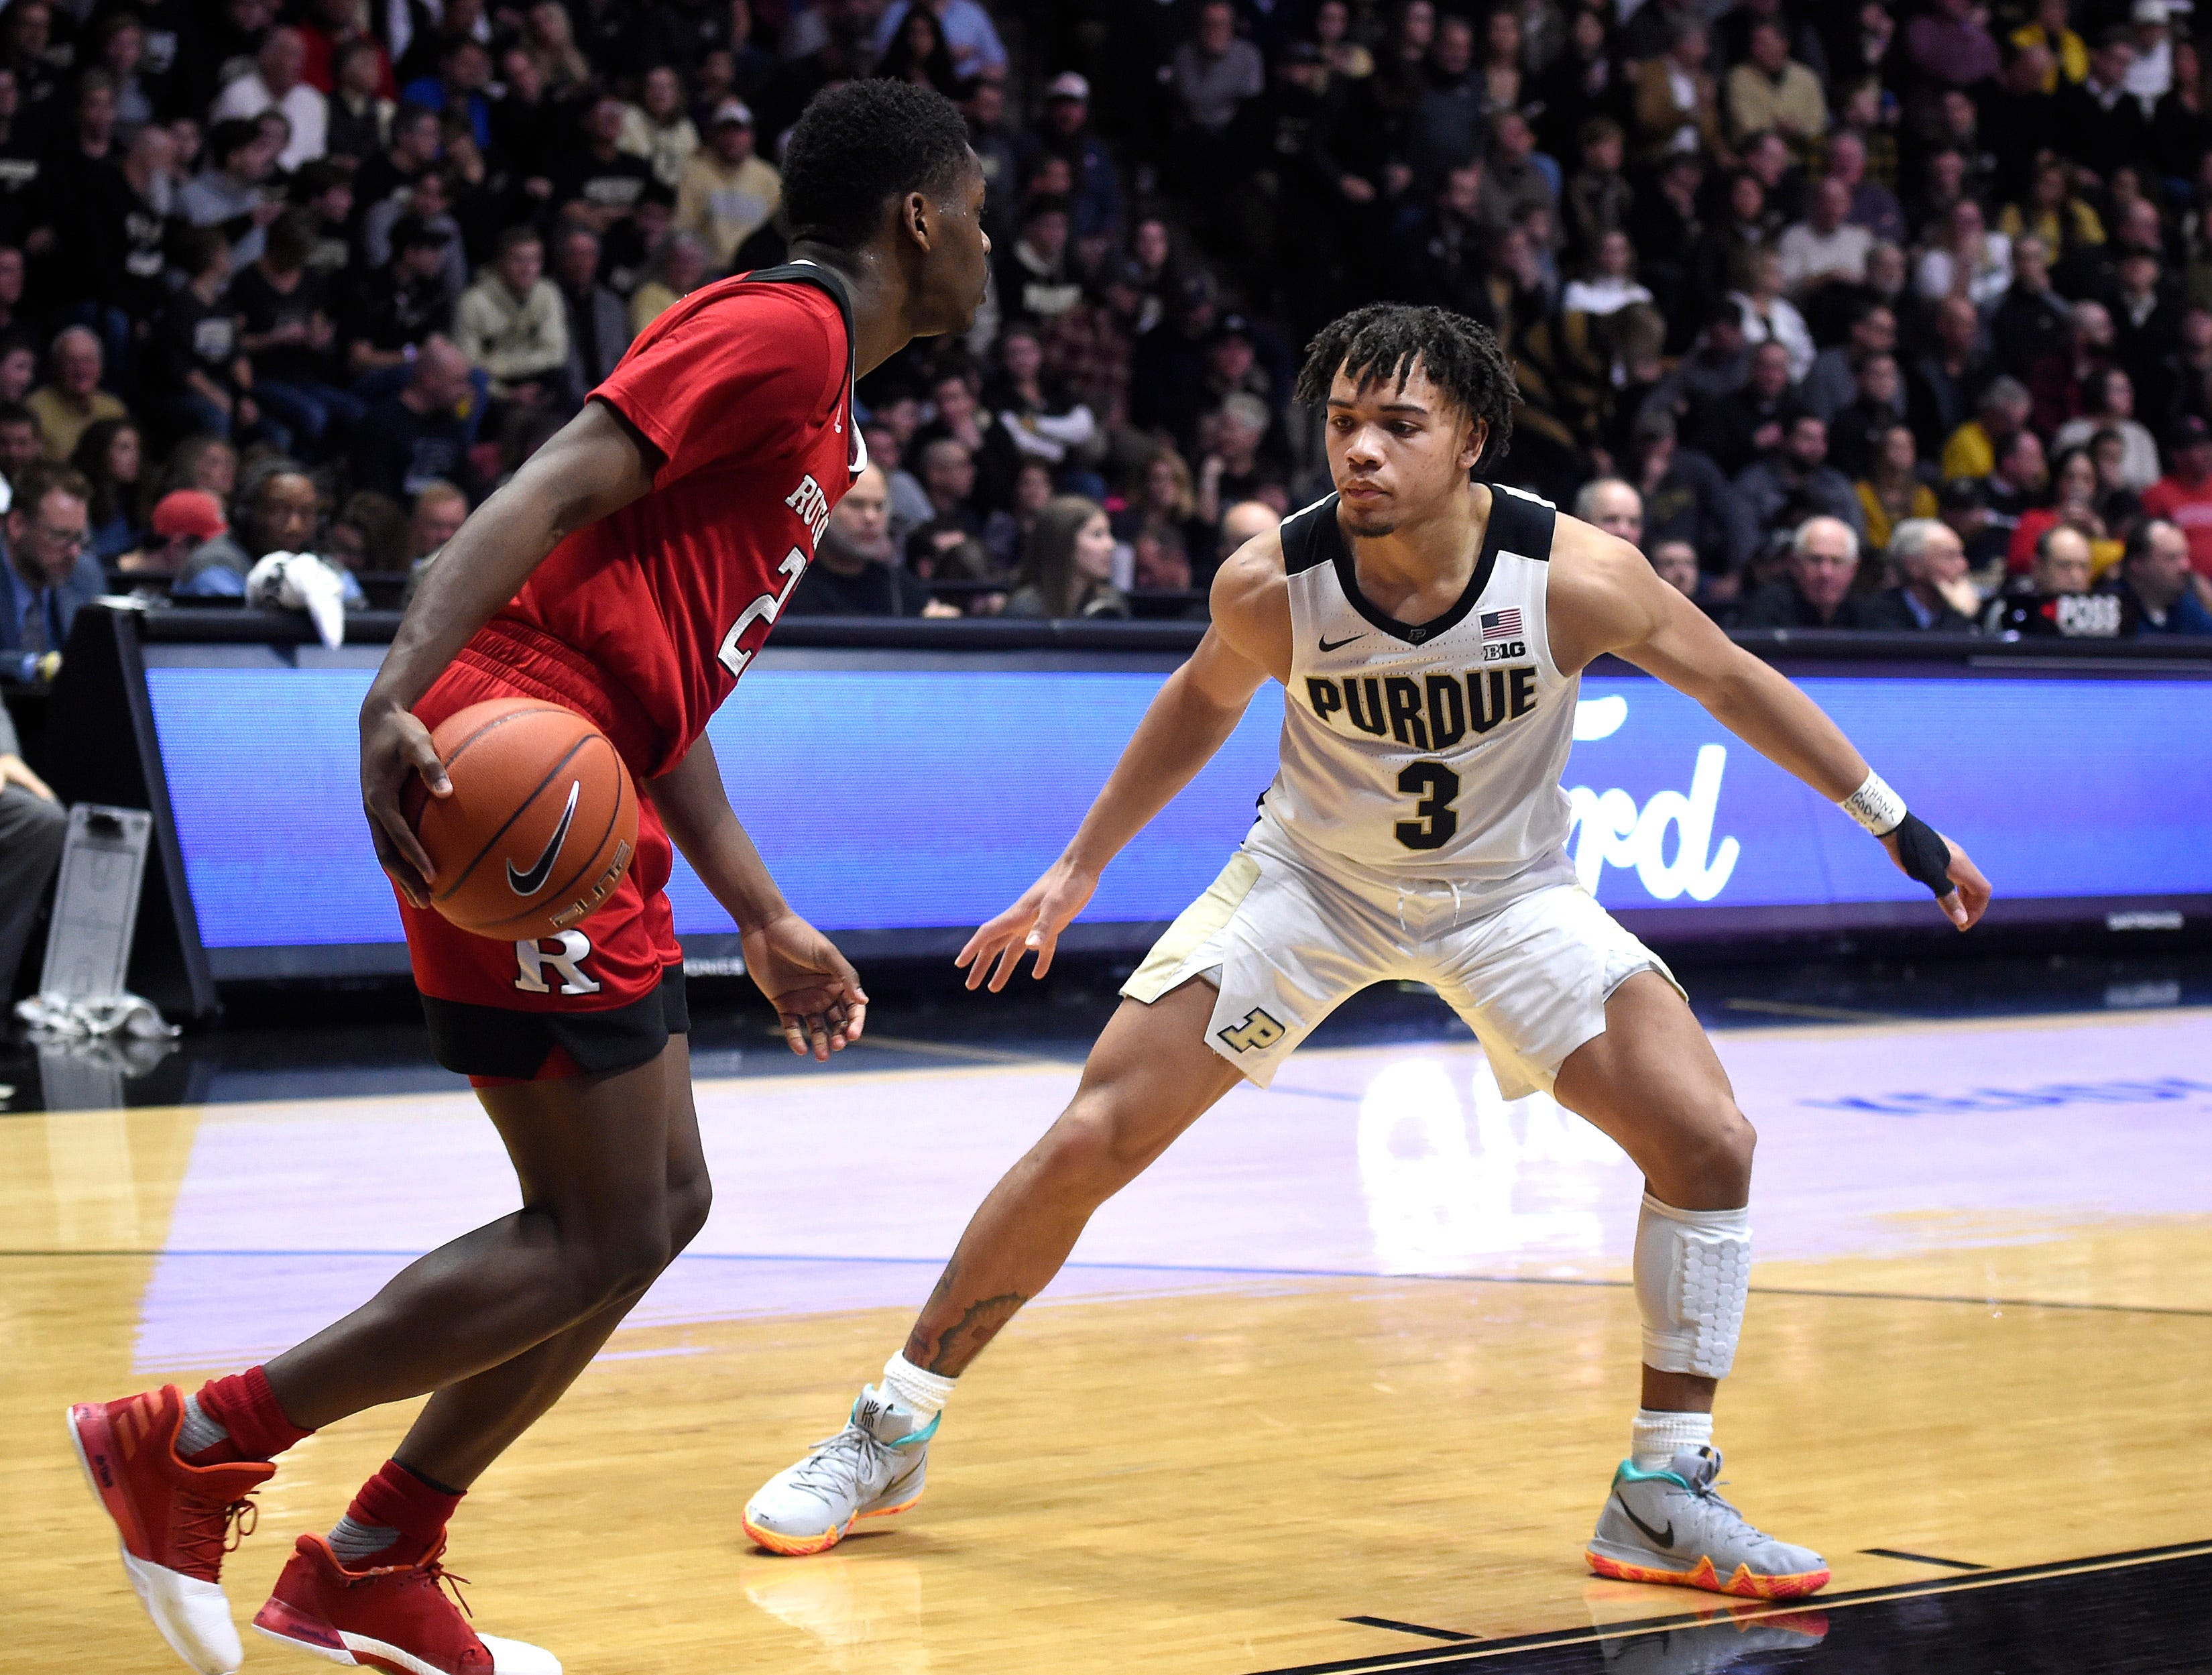 Jan 15, 2019; West Lafayette, IN, USA; Purdue Boilermakers guard Carsen Edwards (3) on the defense against the Rutgers Scarlet Knights in the 2nd half at Mackey Arena. Mandatory Credit: Sandra Dukes-USA TODAY Sports